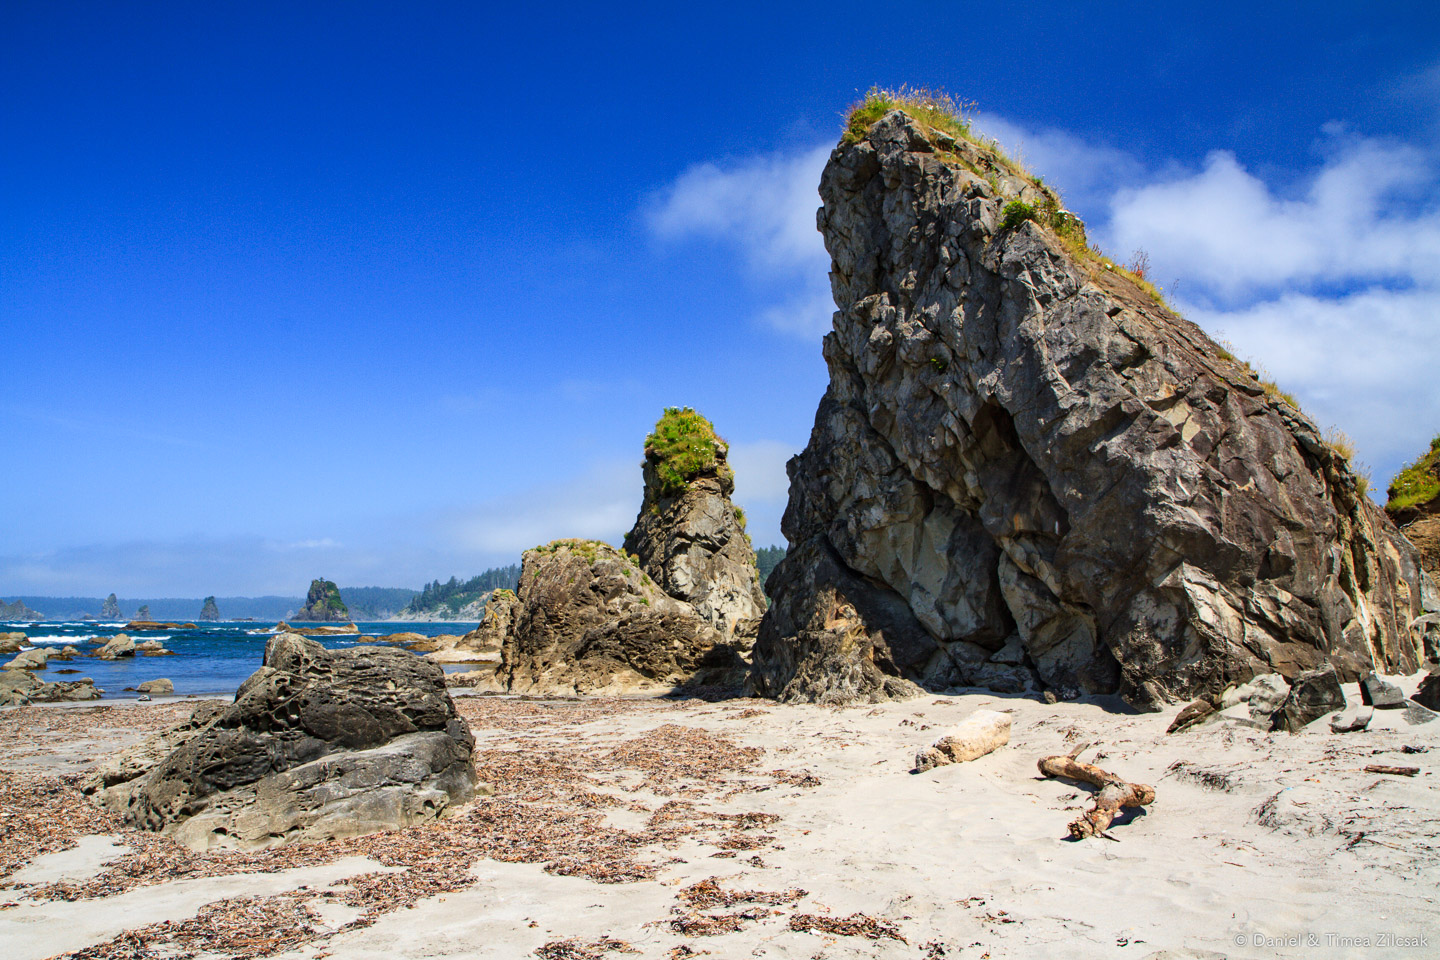 At the very tip of Toleak Point, South Coast Wilderness Trail, O